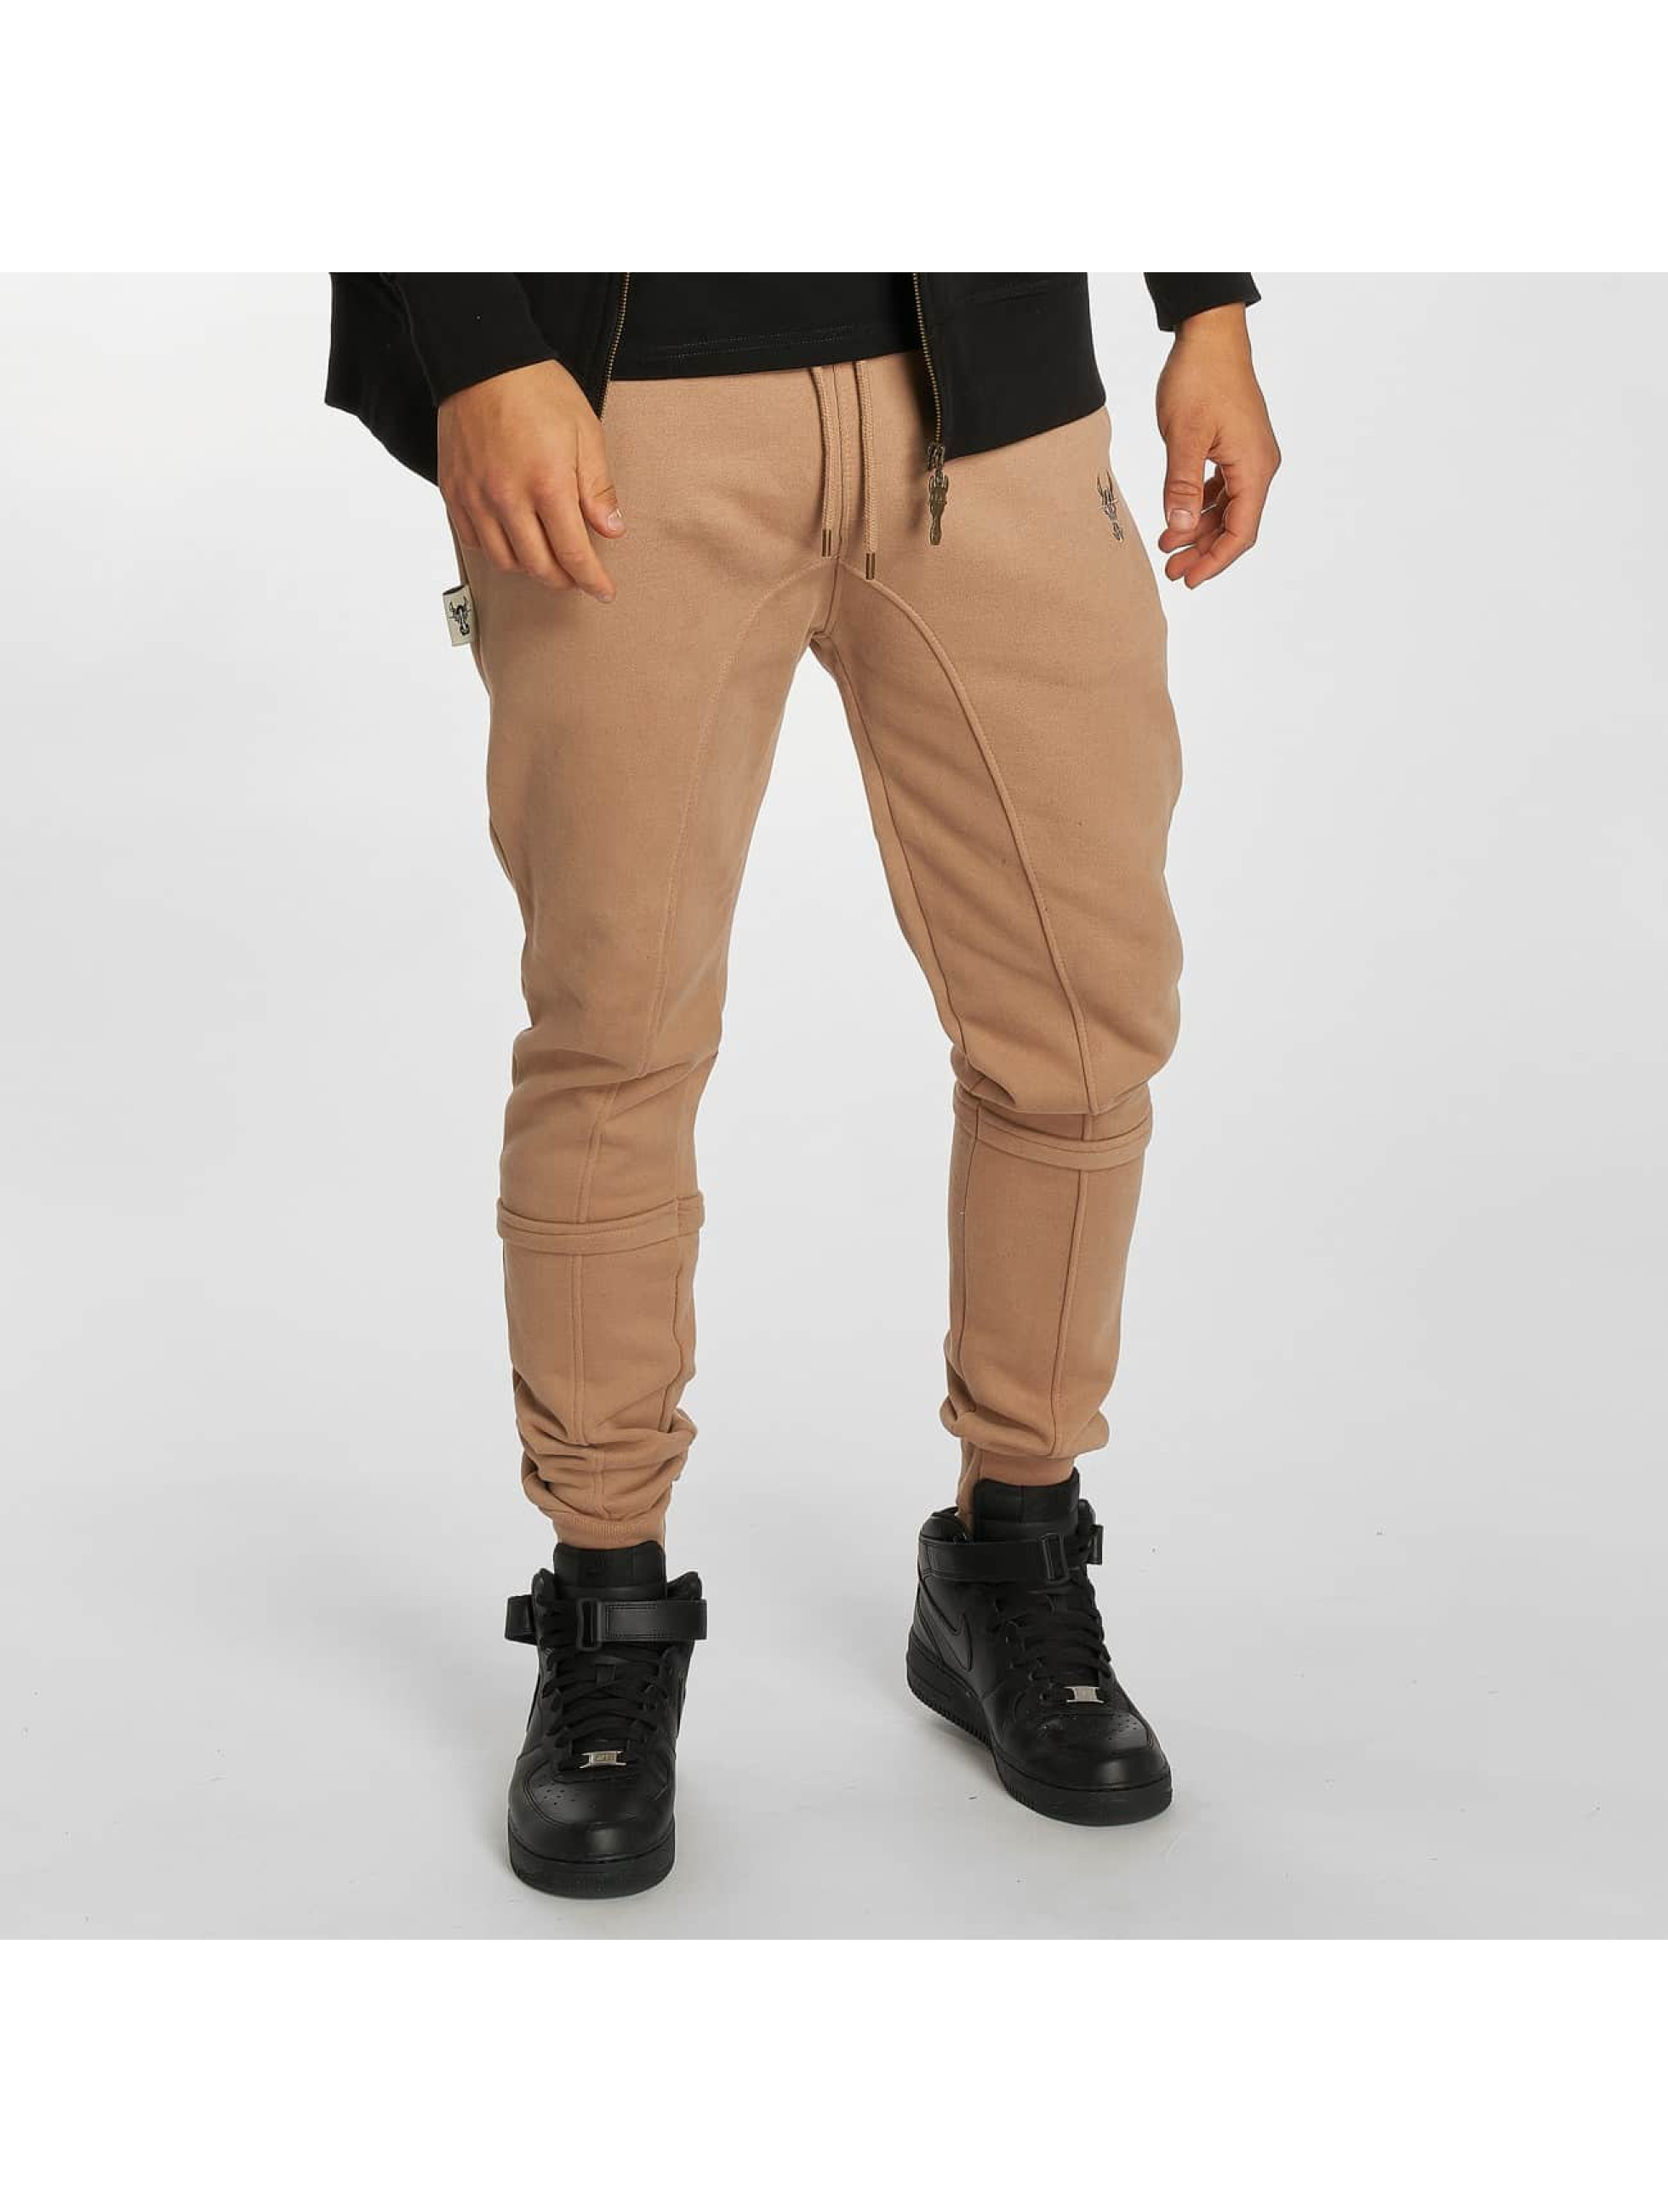 Cavallo de Ferro / Sweat Pant Bull in brown L